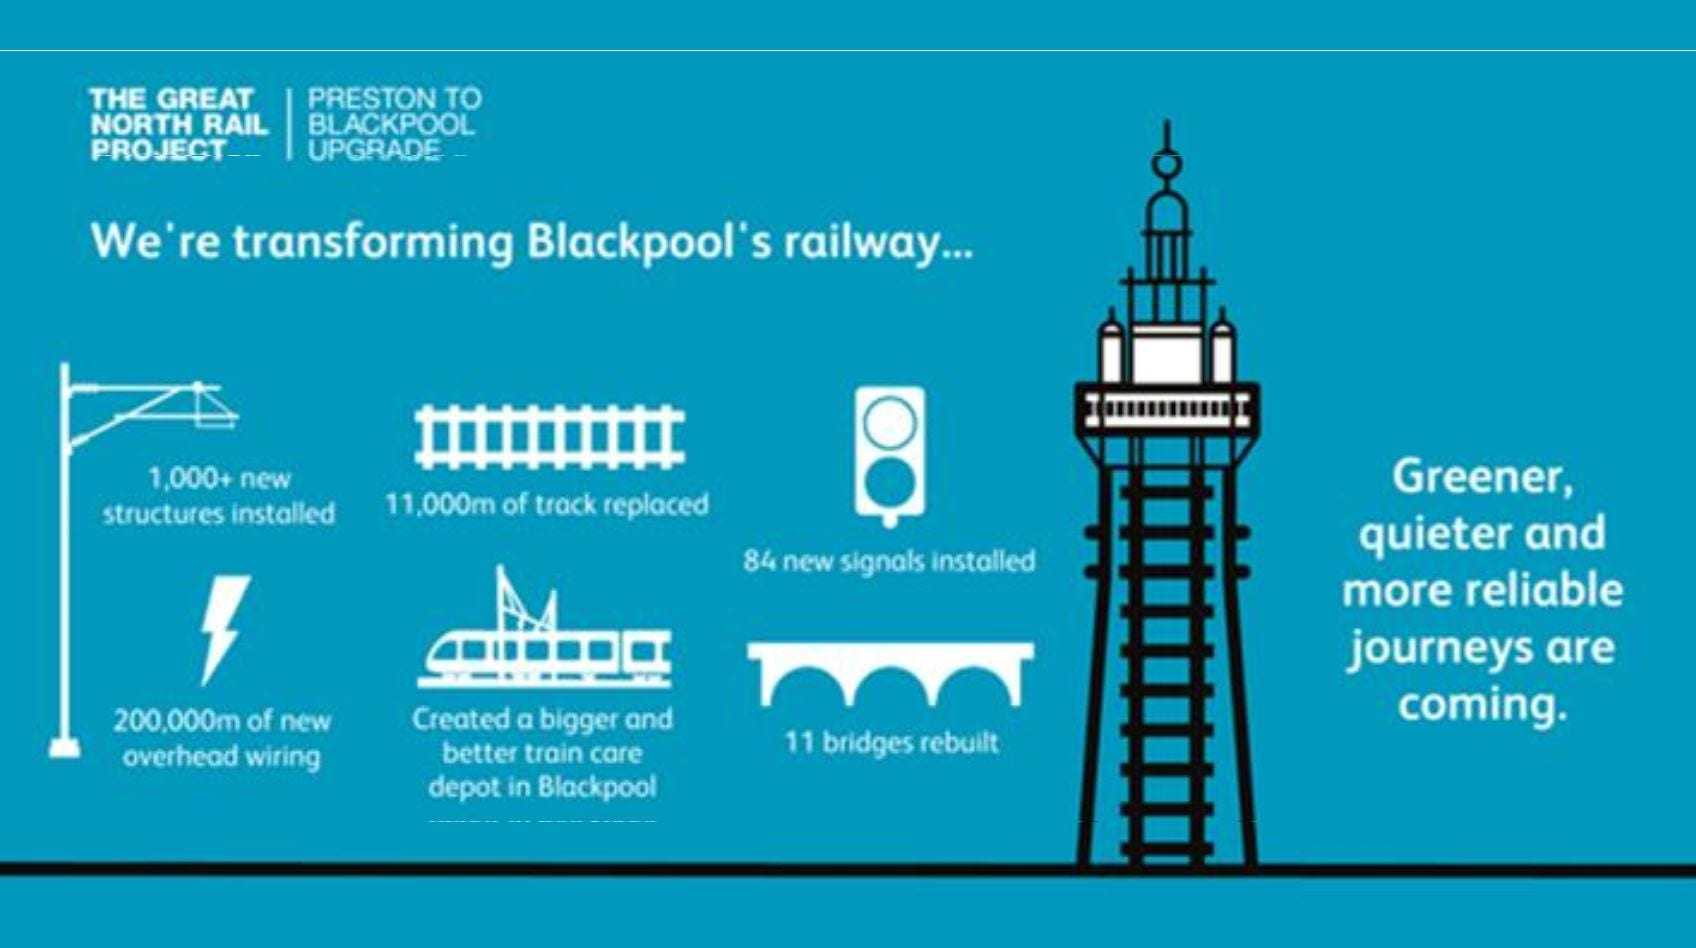 The Great North Rail Project, Electrification of the Blackpool Railway Line